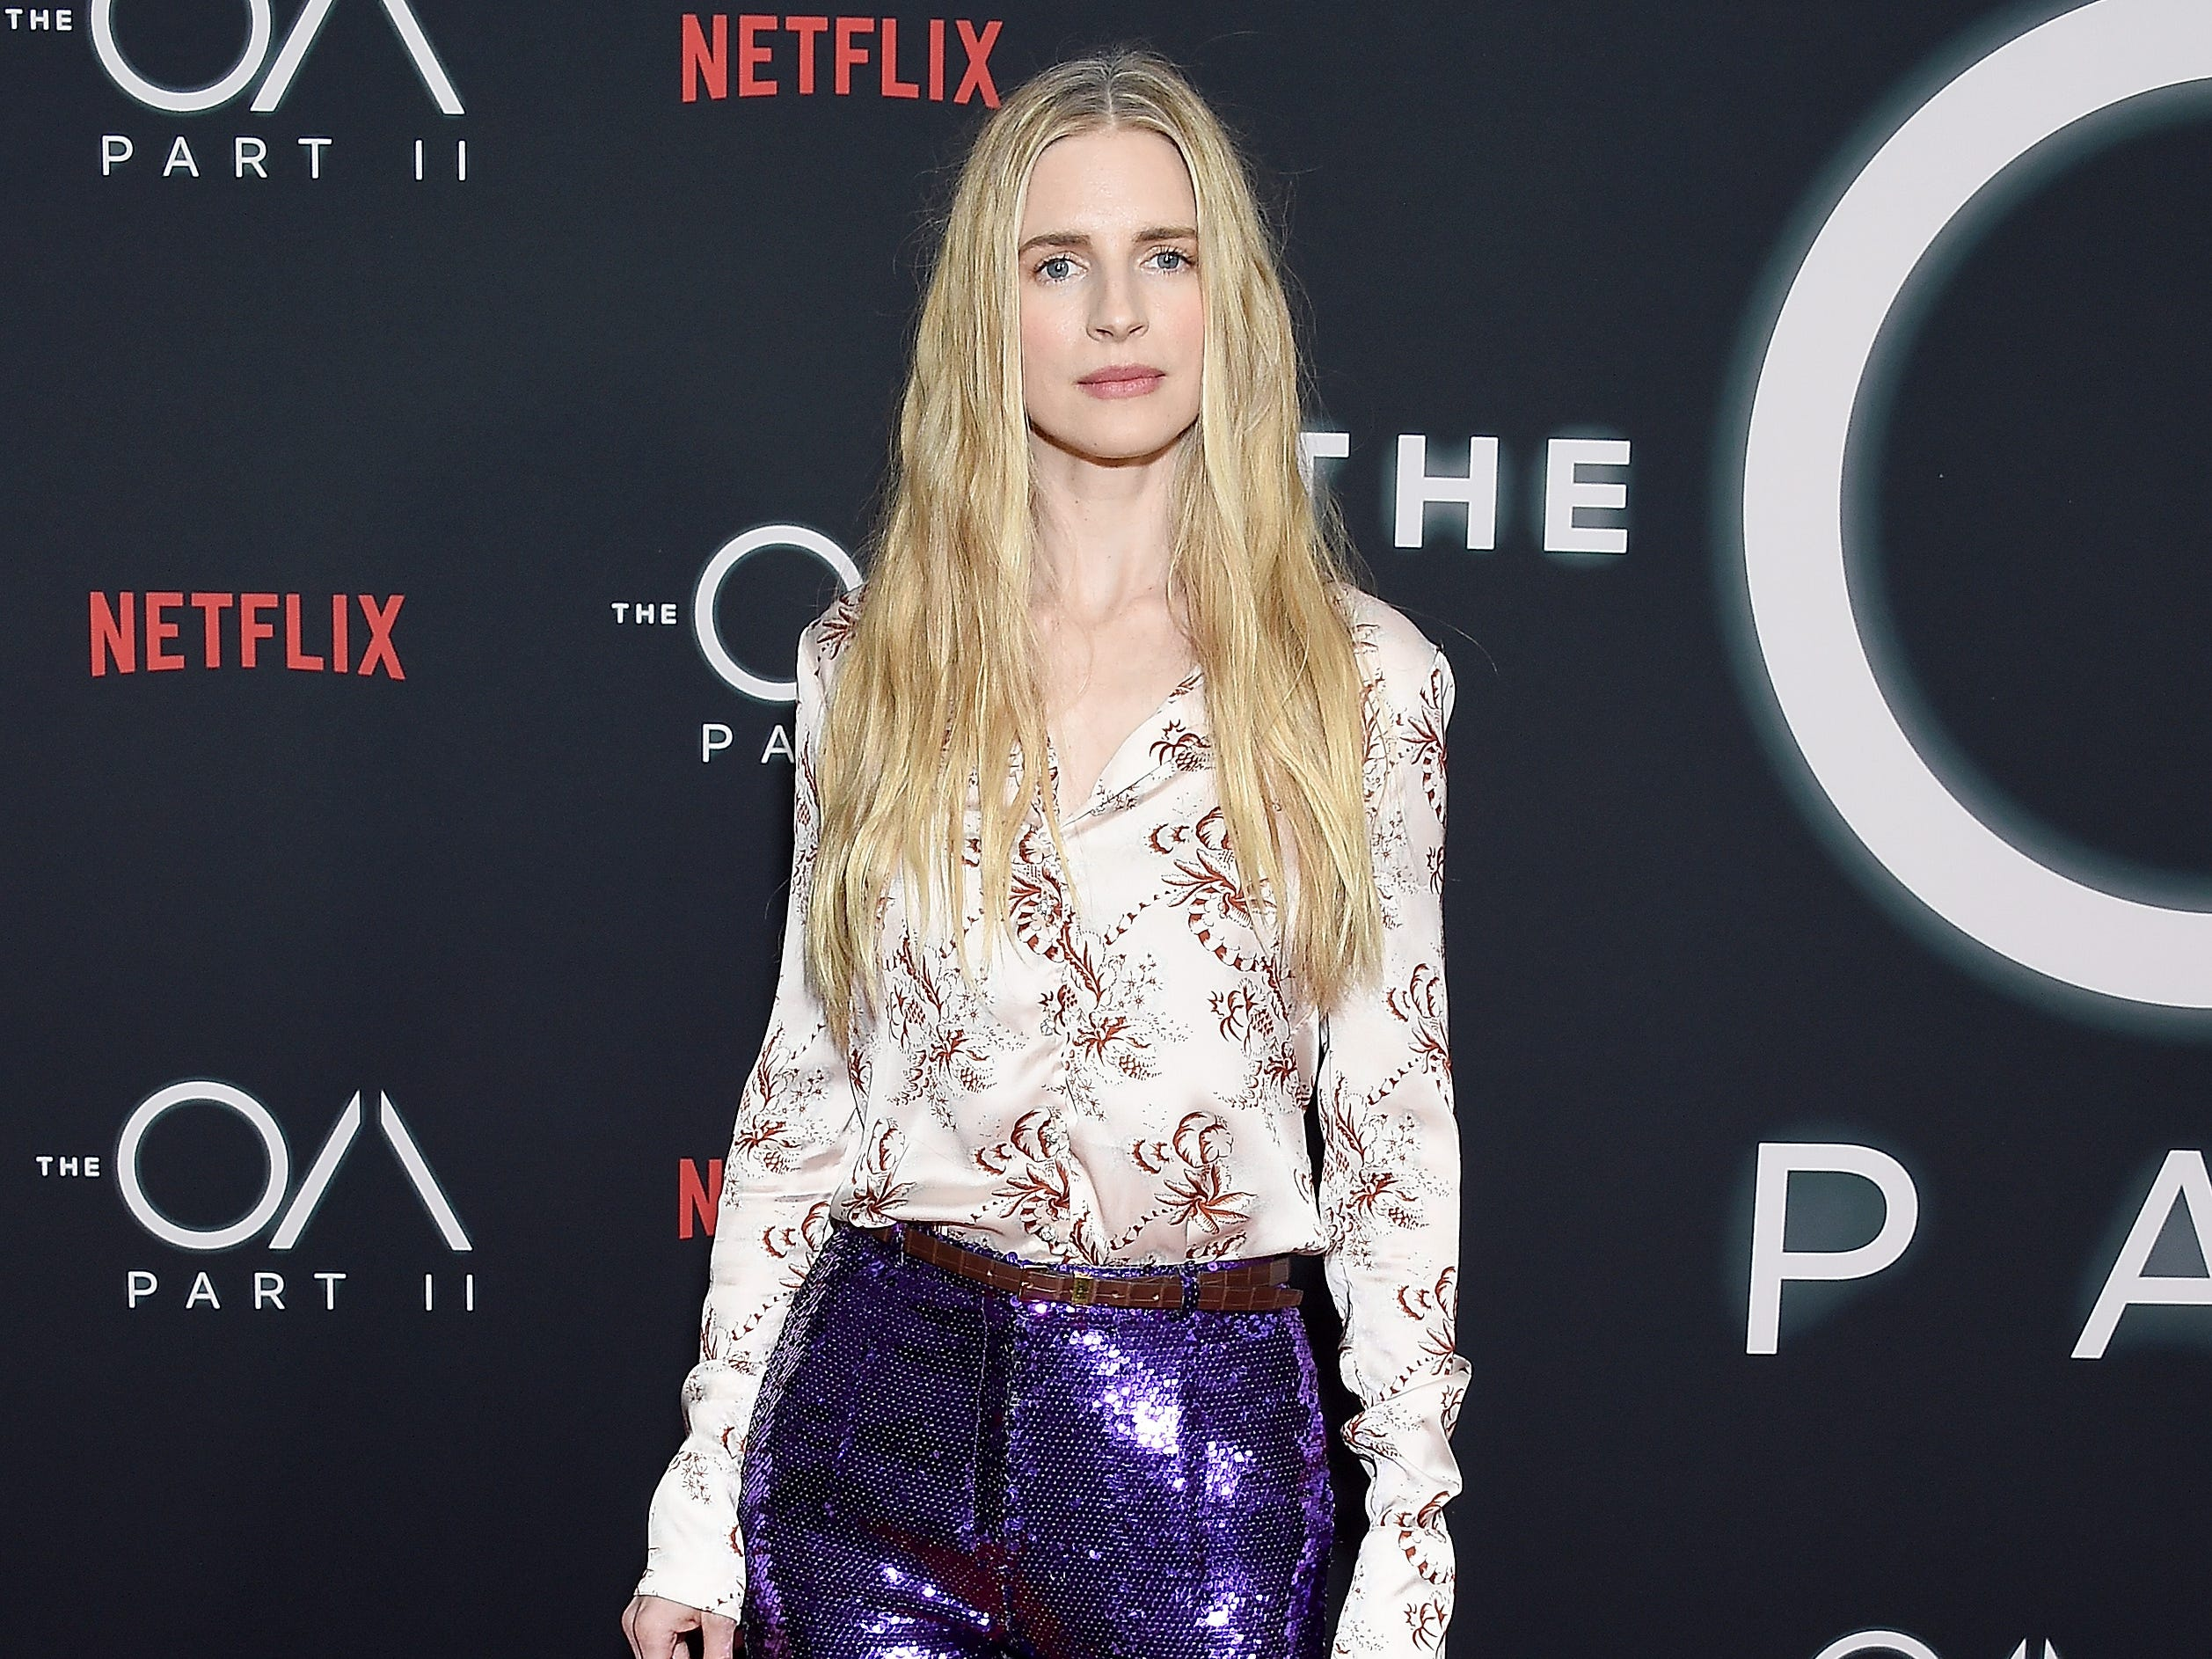 "LOS ANGELES, CA - MARCH 19:  Brit Marling arrives at Netflix's ""The OA Part II"" Premiere at LACMA on March 19, 2019 in Los Angeles, California.  (Photo by Gregg DeGuire/WireImage) ORG XMIT: 775312052 ORIG FILE ID: 1131638888"